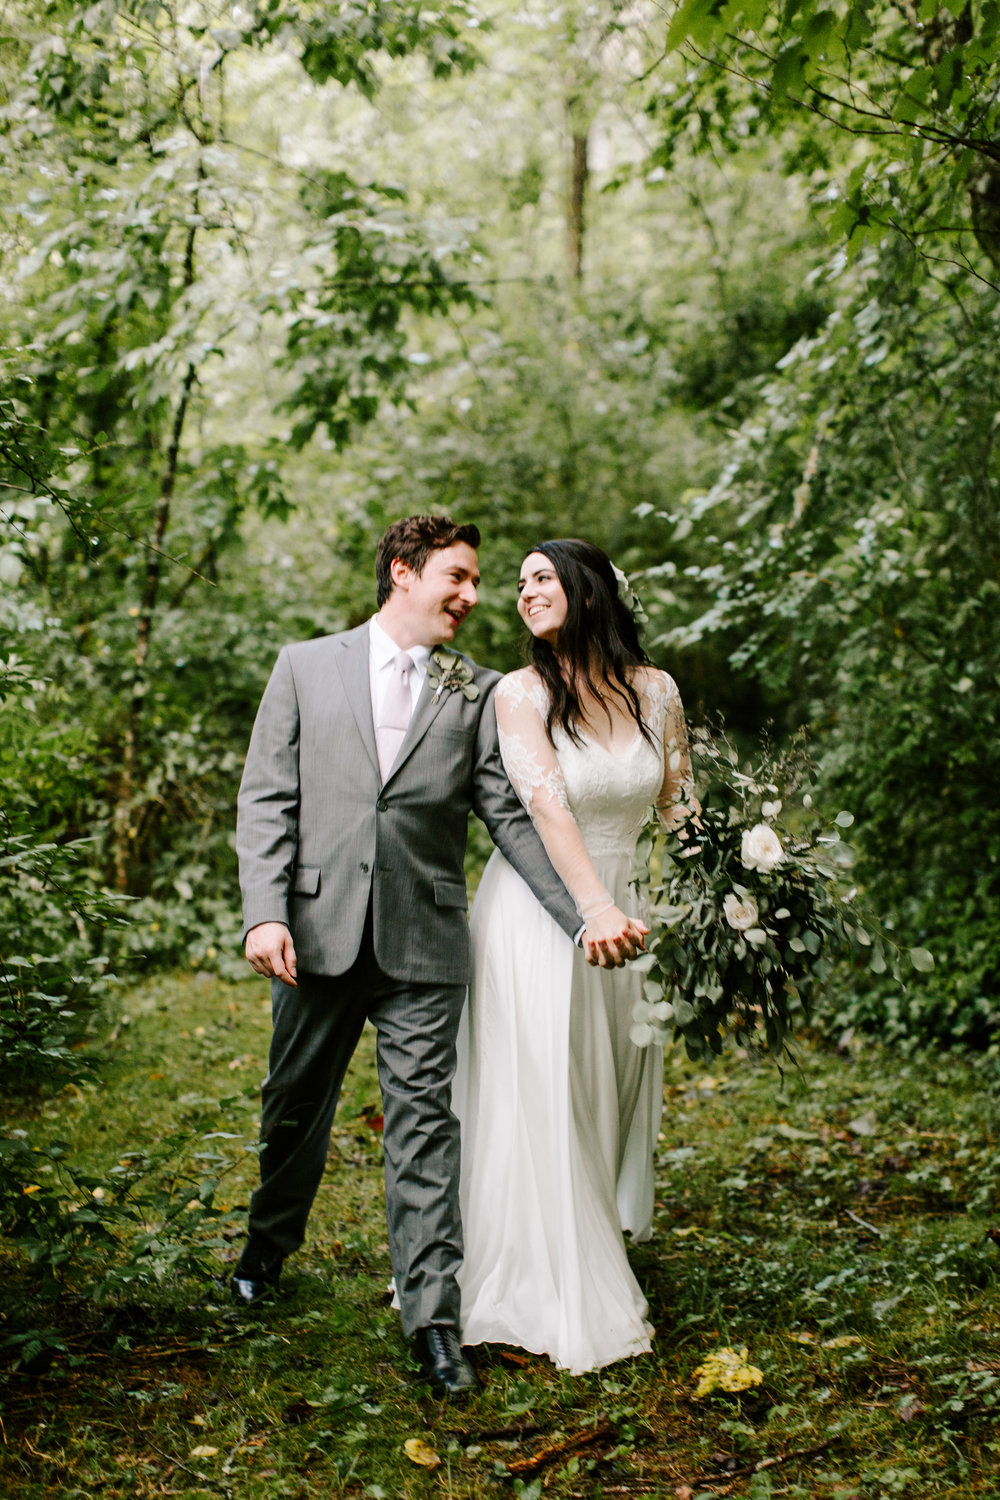 groom-and-bride-holding-hands-in-woods.jpg